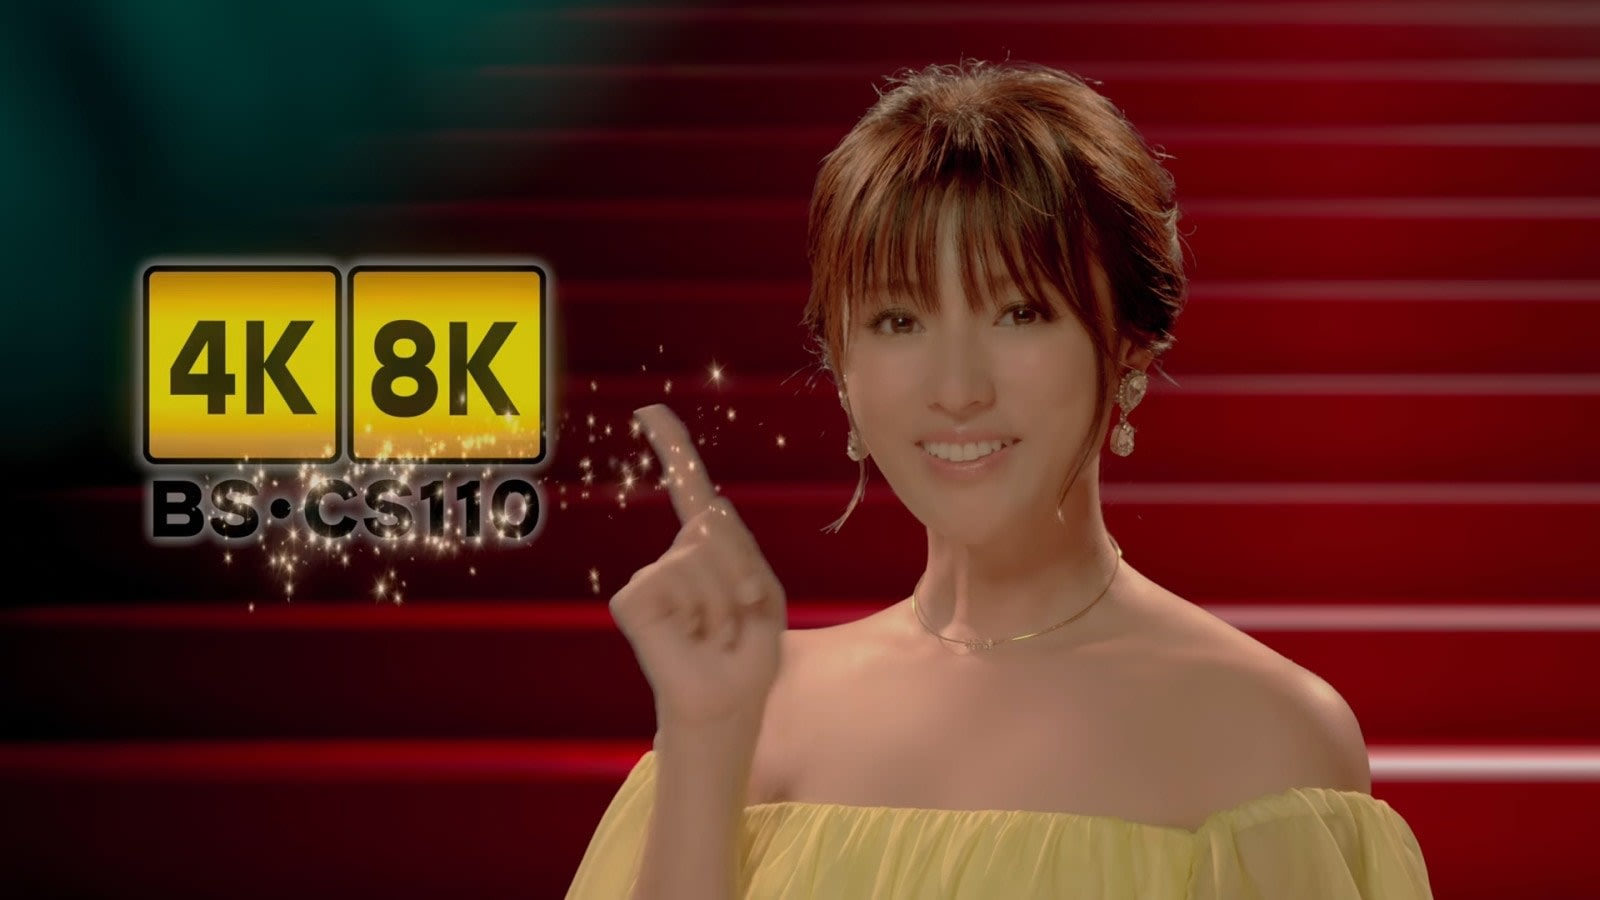 The first 8K satellite TV broadcasts launched today in Japan